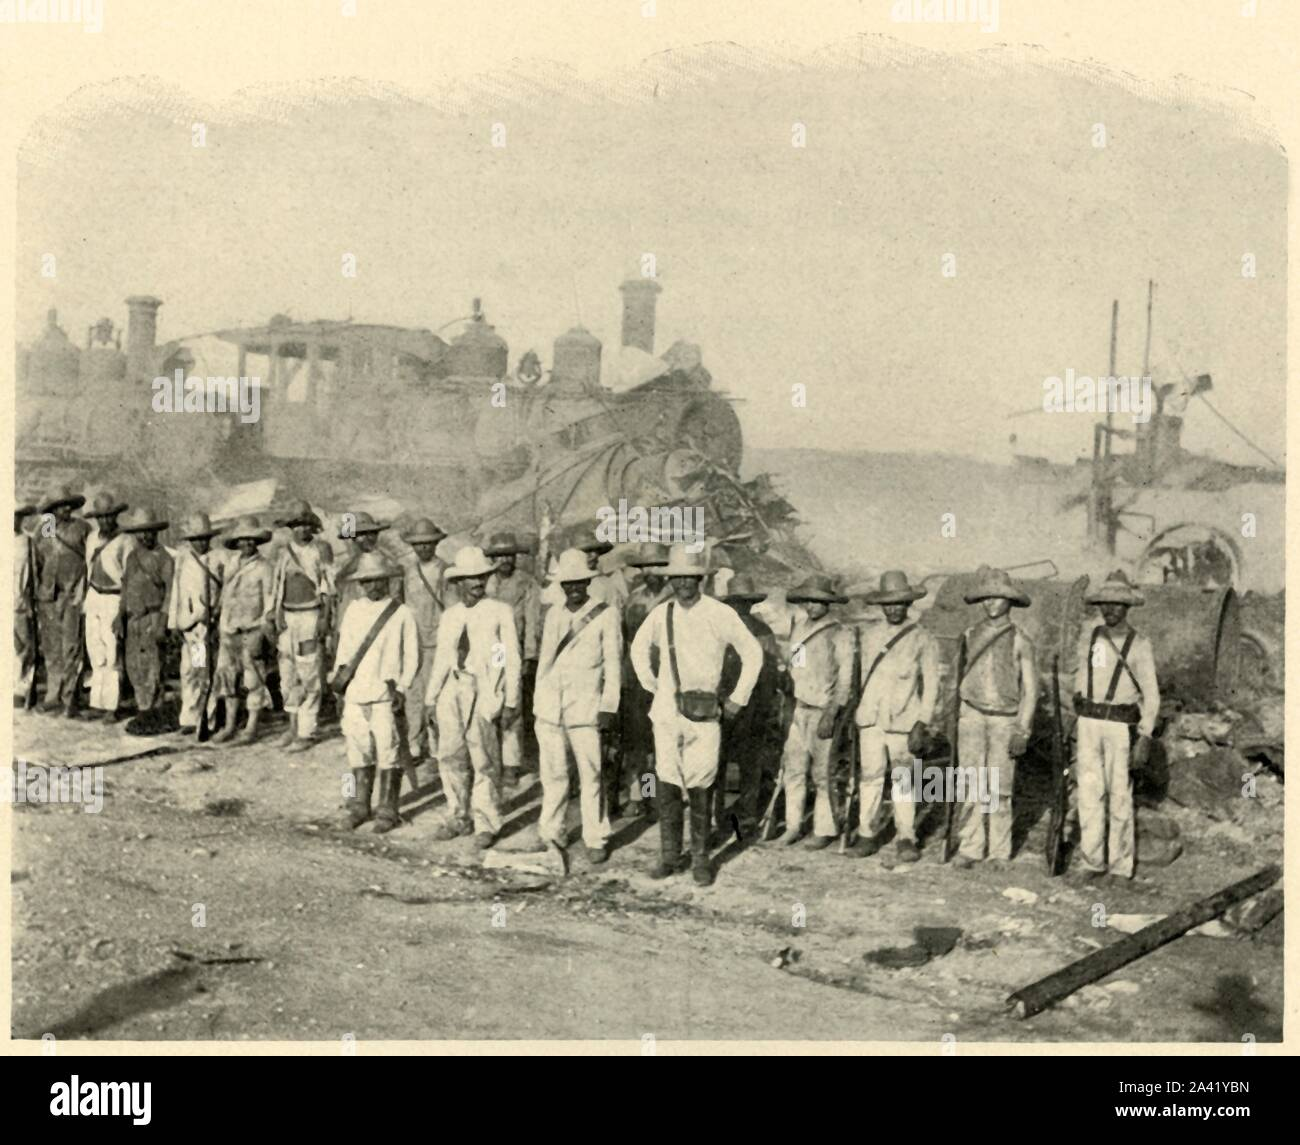 "'Cuban Soldiers (?) beside Ruins of Roundhouse, Morning of June 23rd', Spanish-American War, June 1898, (1899). A group of men posing in front of steam locomotives. From ""The Little I saw of Cuba"" by Burr McIntosh, with photographs by the author. (In 1898, American actor and journalist William Burr McIntosh went to Cuba to cover the Spanish-American War for ""Leslie's Weekly"" as a reporter and photographer). [F. Tennyson Neely, London & New York, 1899] Stock Photo"